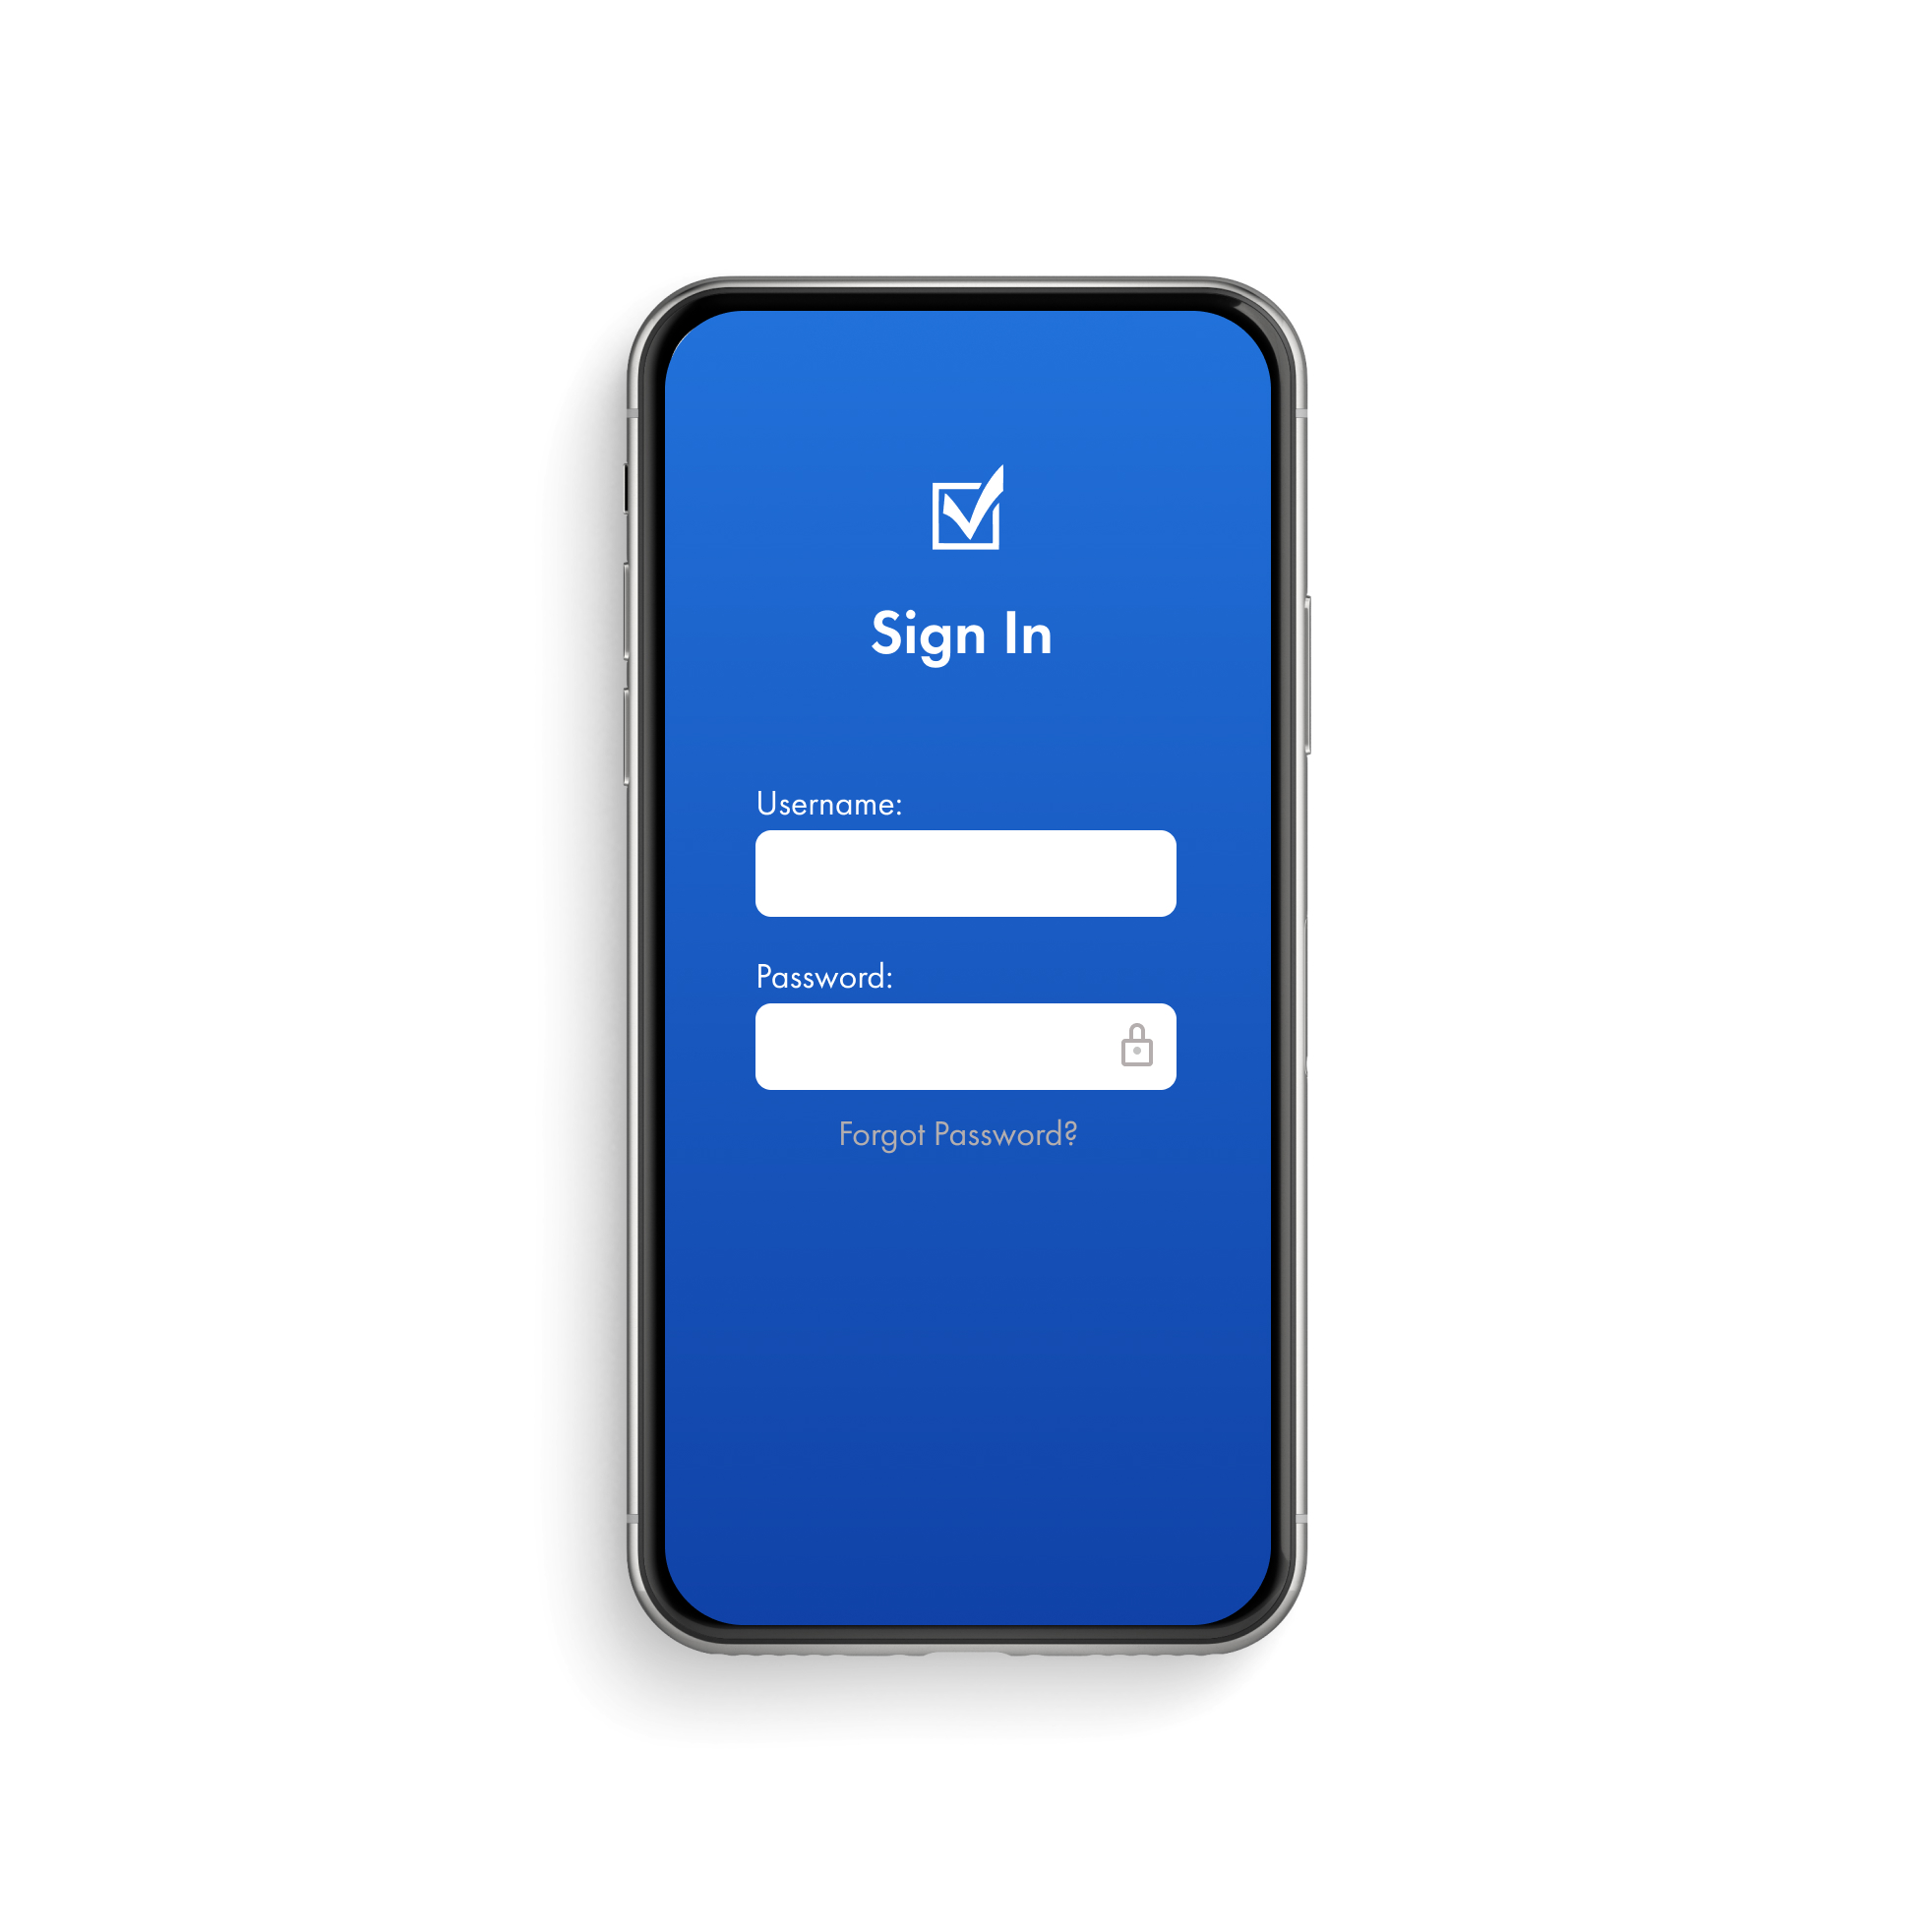 Security - 3 Layer Password Authentication Bank-Grade Data Encryption Login Usage Logs with IP Address Tracking Blockchain Integration Protected in Microsoft Cloud